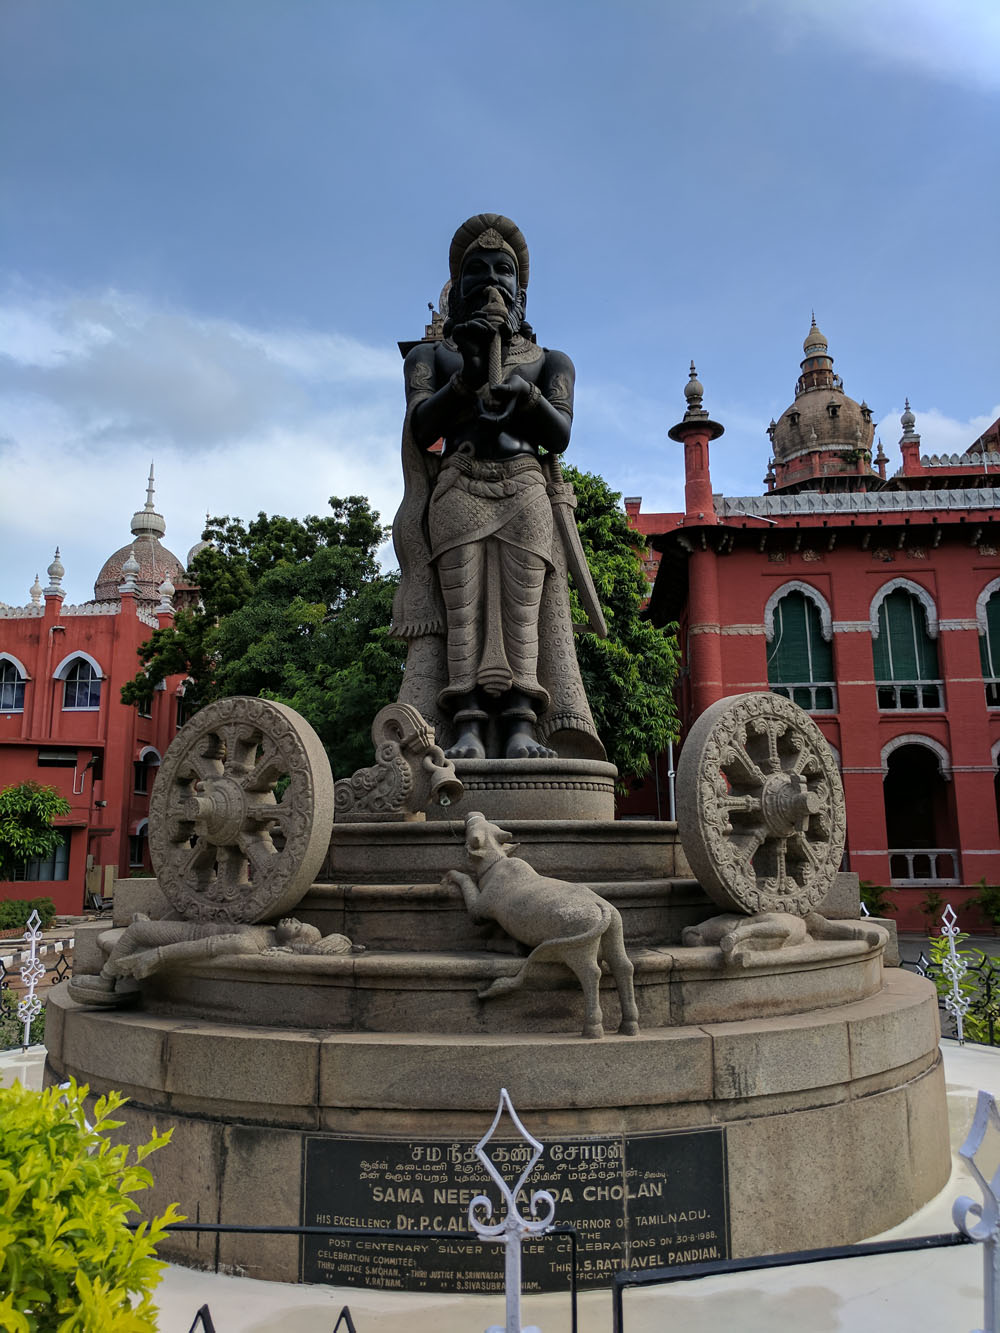 Manu Needhi Cholan, who executed his own son to provide justice to a cow